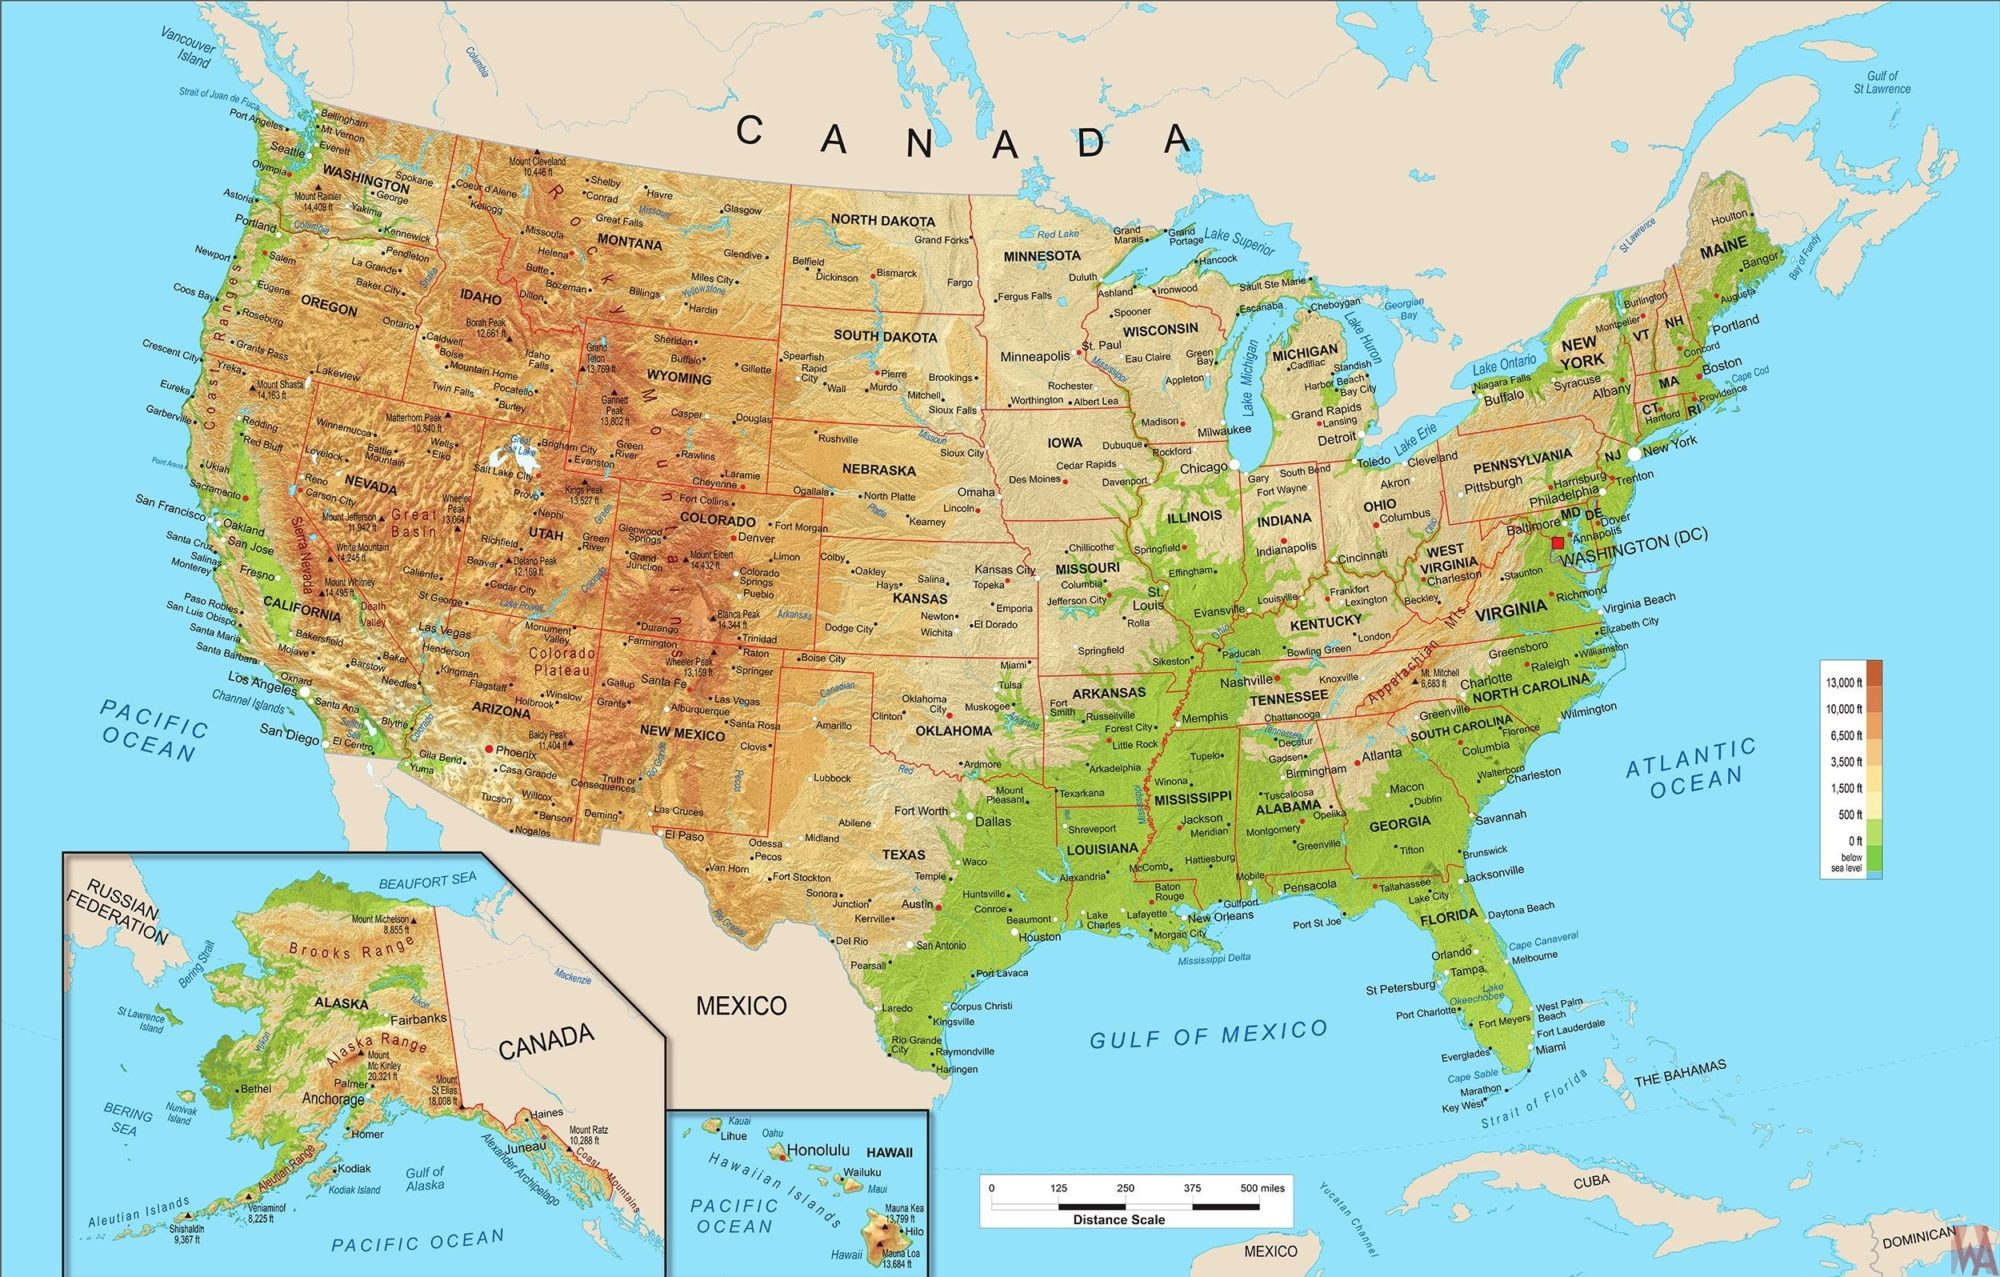 physical Geo map of USA with rivers and mountains | WhatsAnswer on gsc map, fsc map, kaz map, geo vision, peo map, trace map, orissa map, isr map, geo tag, gra map, flow map, e map, ac map, geographical map, geo tracking, solar generation map, sky map, geo political, pol map, neo geo games, dodge map, animate map, caf map, ita map, glonass map, usa map, geo browser, last dream map, meso map, geo informatics, ori map, geo track, terrain map, bubble map, pisa map, geo tv, geo challenge, tehran map, limassol map, leica geo office,